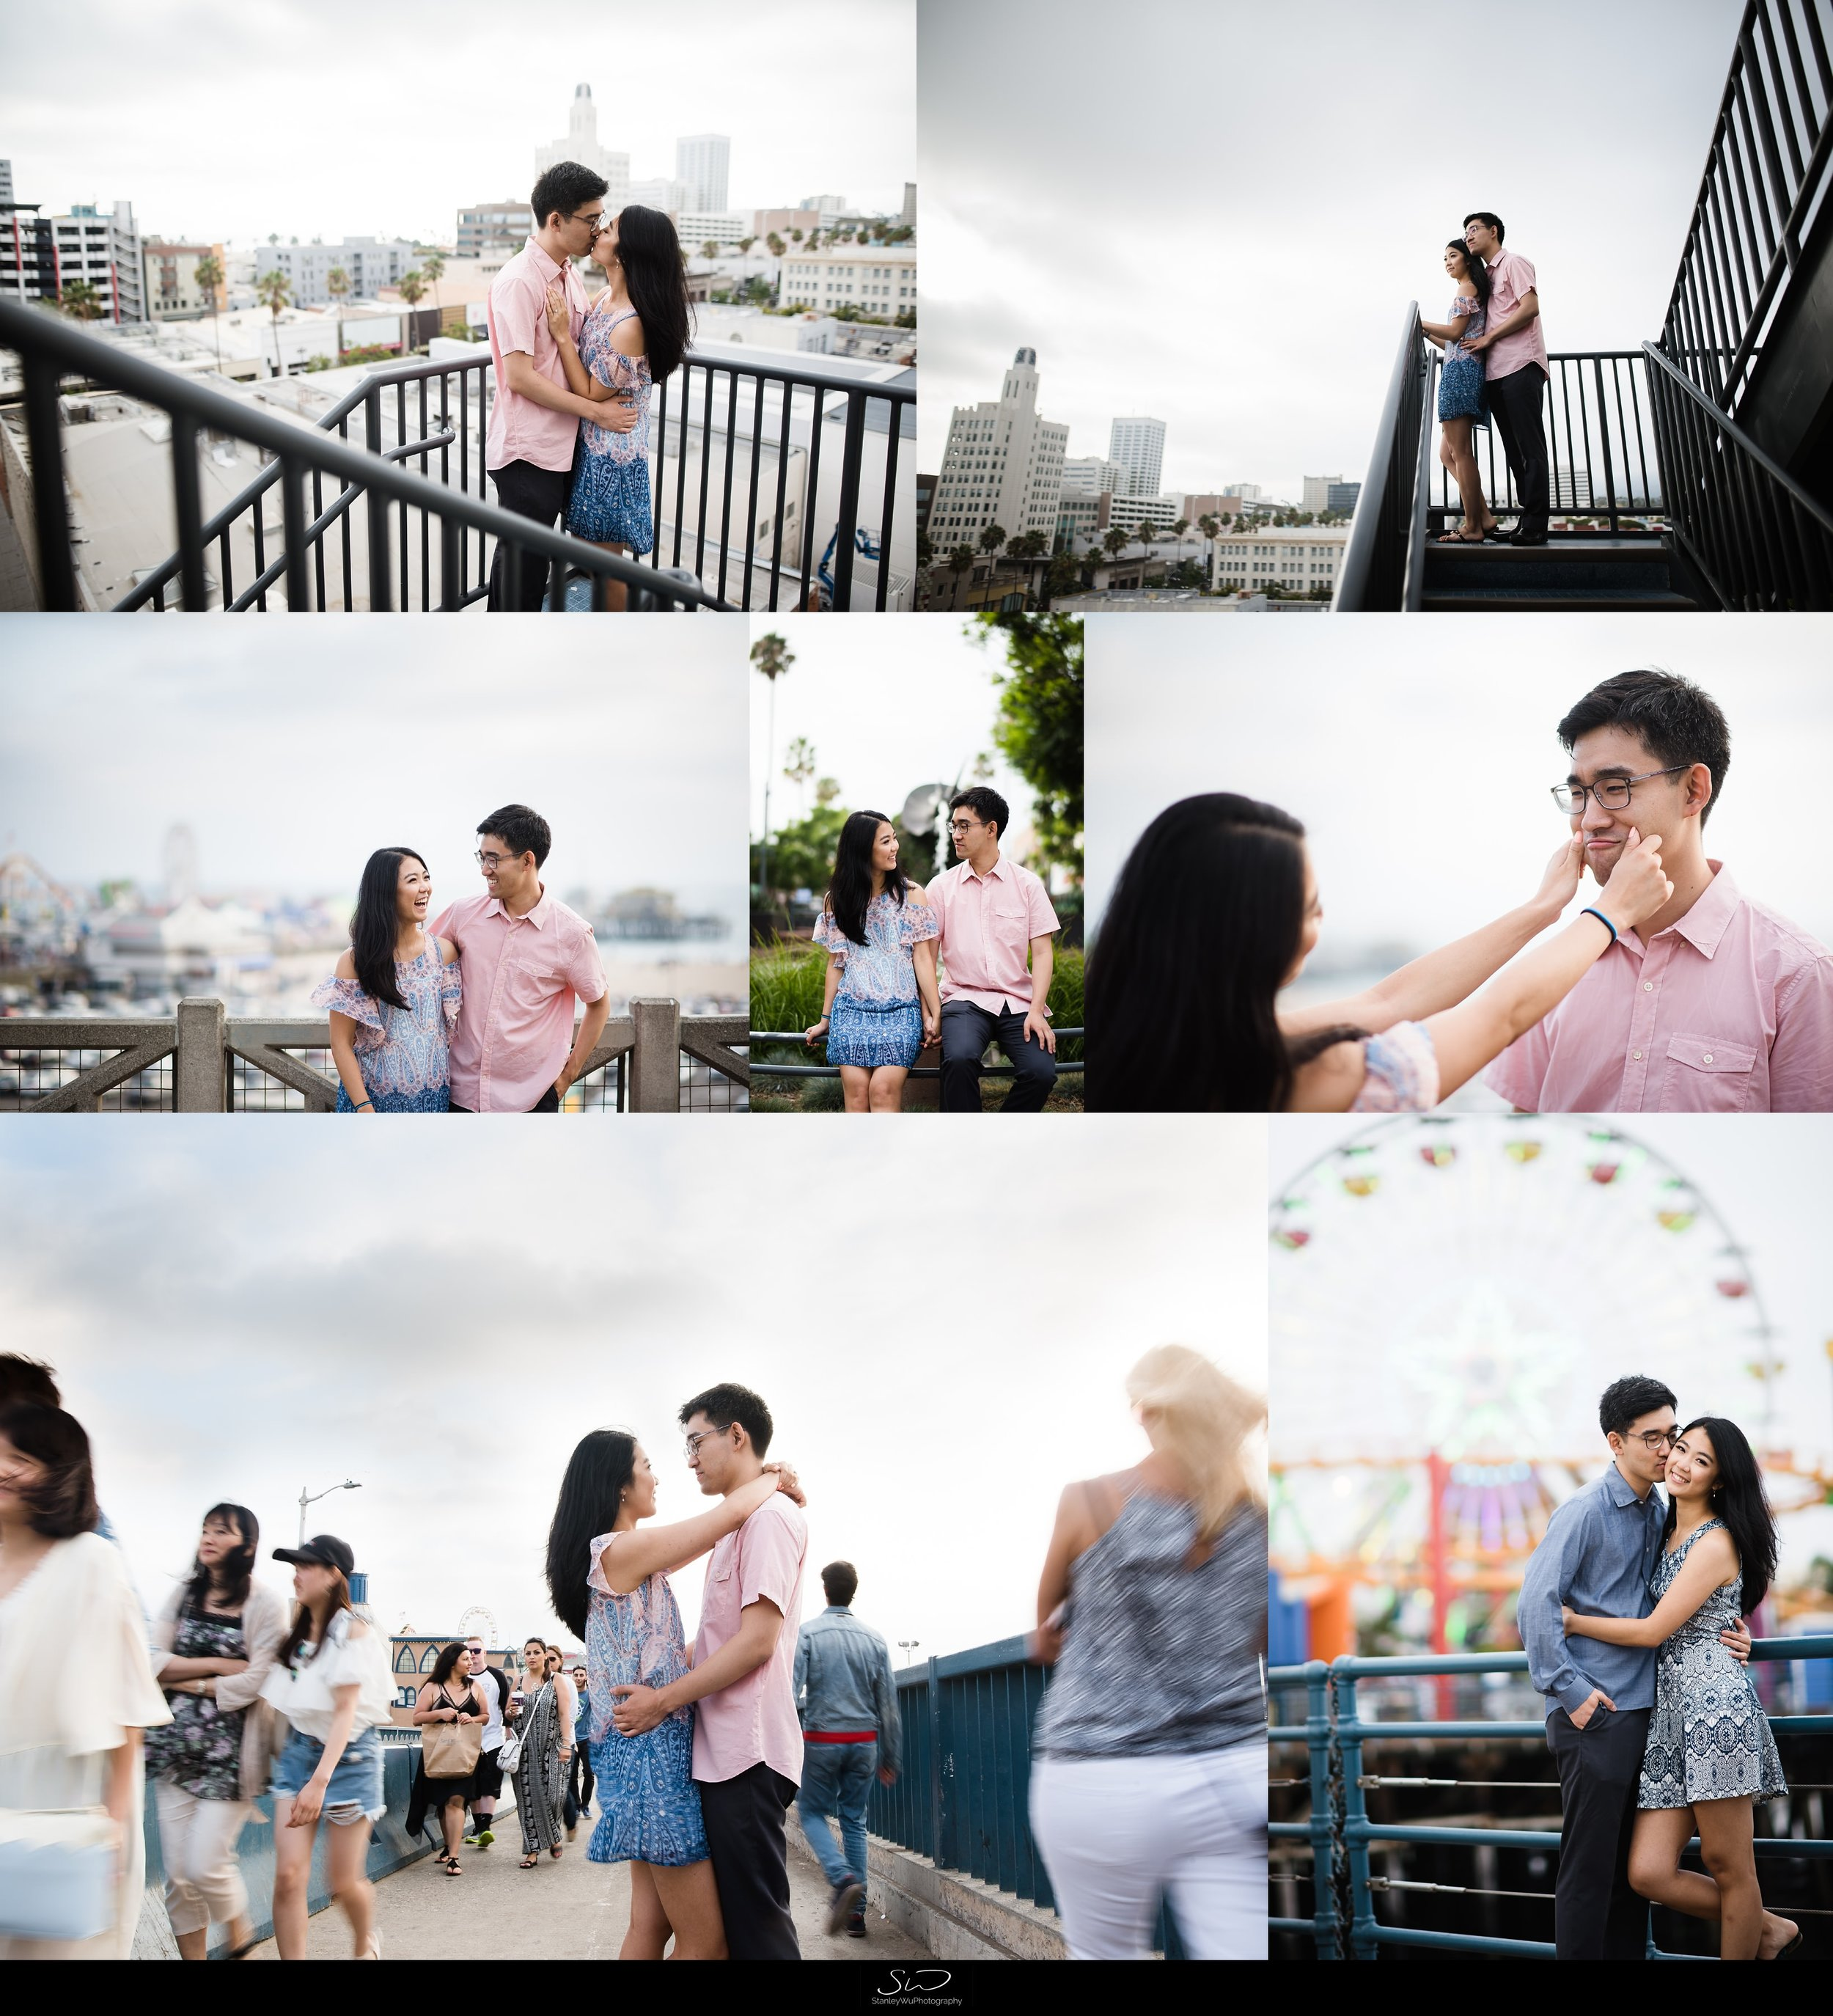 cloudy-day-downtown-santa-monica-engagement-stanley-wu-photography.jpg